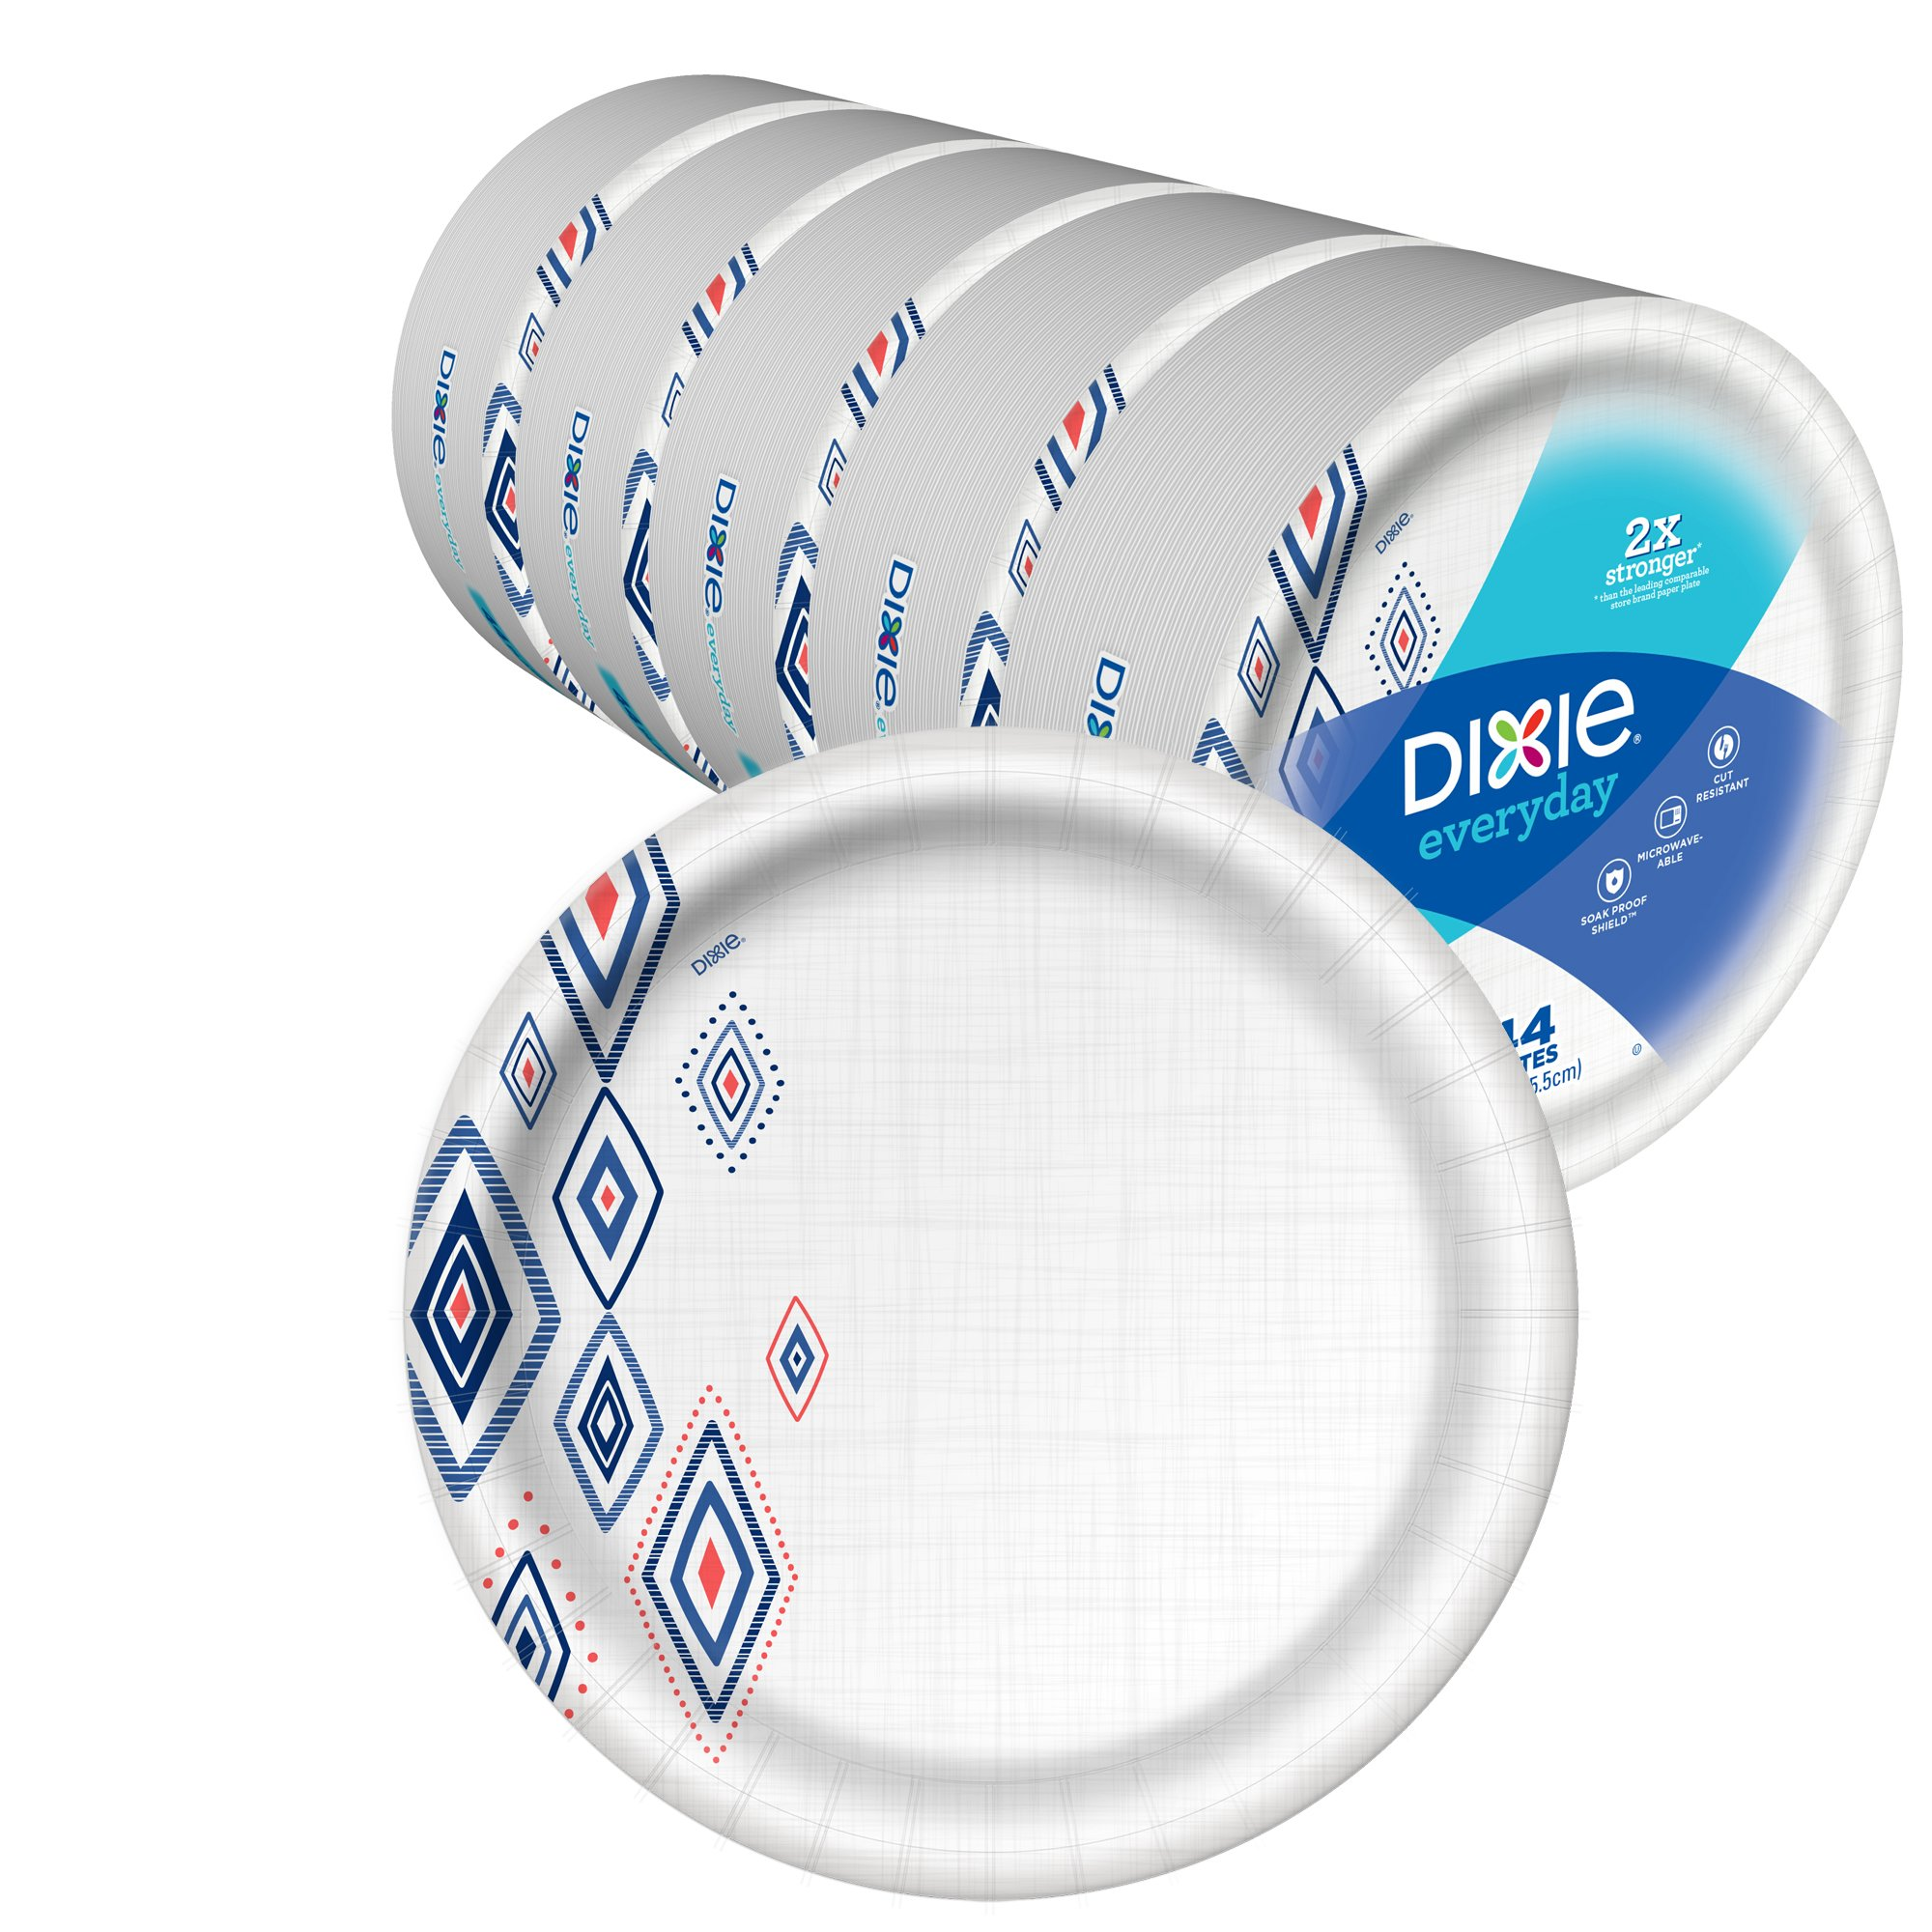 Dixie Everyday Paper Plates,10 1/16'' Plate, 220 Count, Amazon Exclusive Design, 5 Packs of 44 Plates, Dinner Size Printed Disposable Plates by Dixie